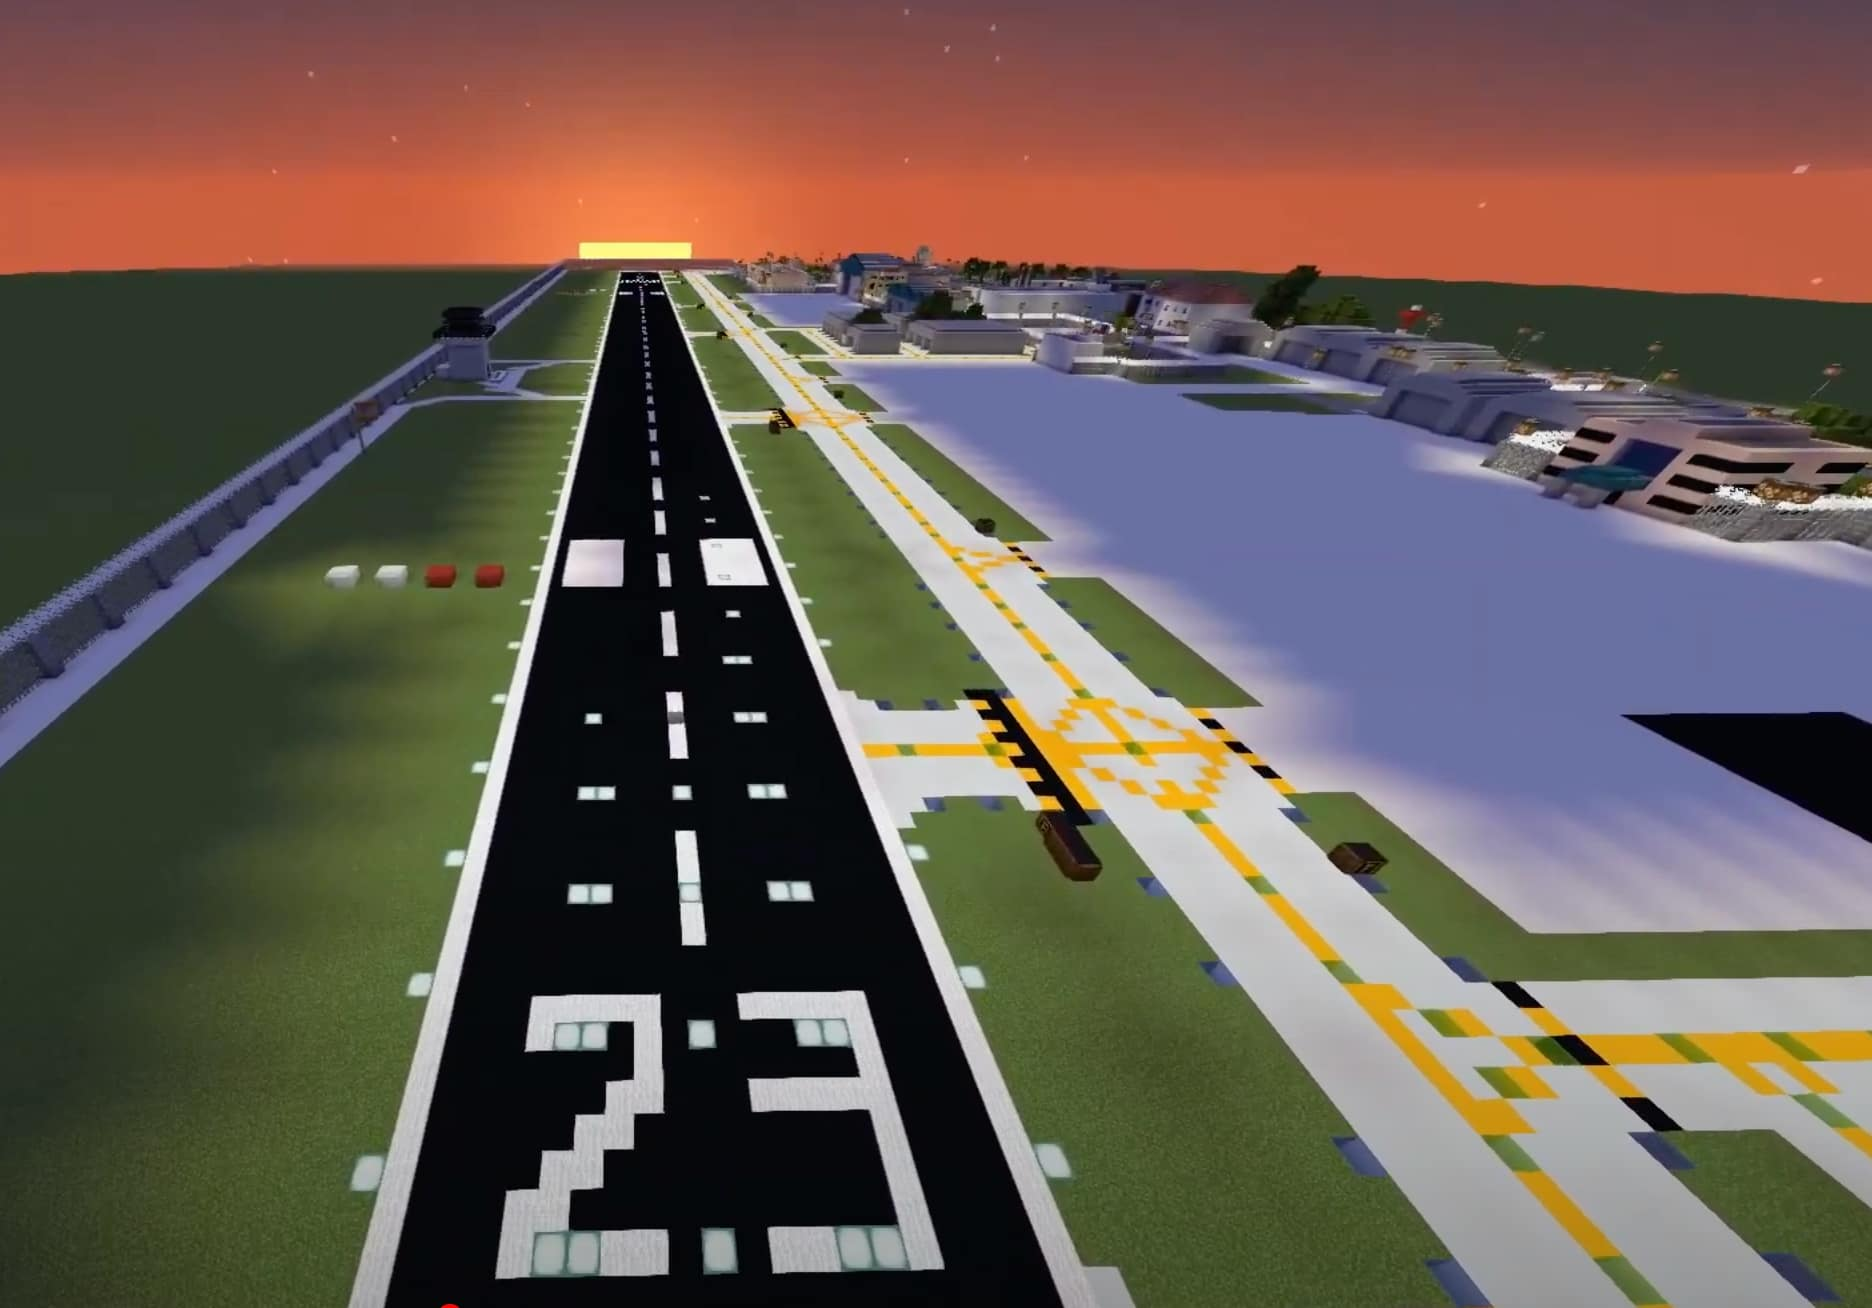 The BASA team built a virtual replica of the Boca Raton Airport in the video game Minecraft.